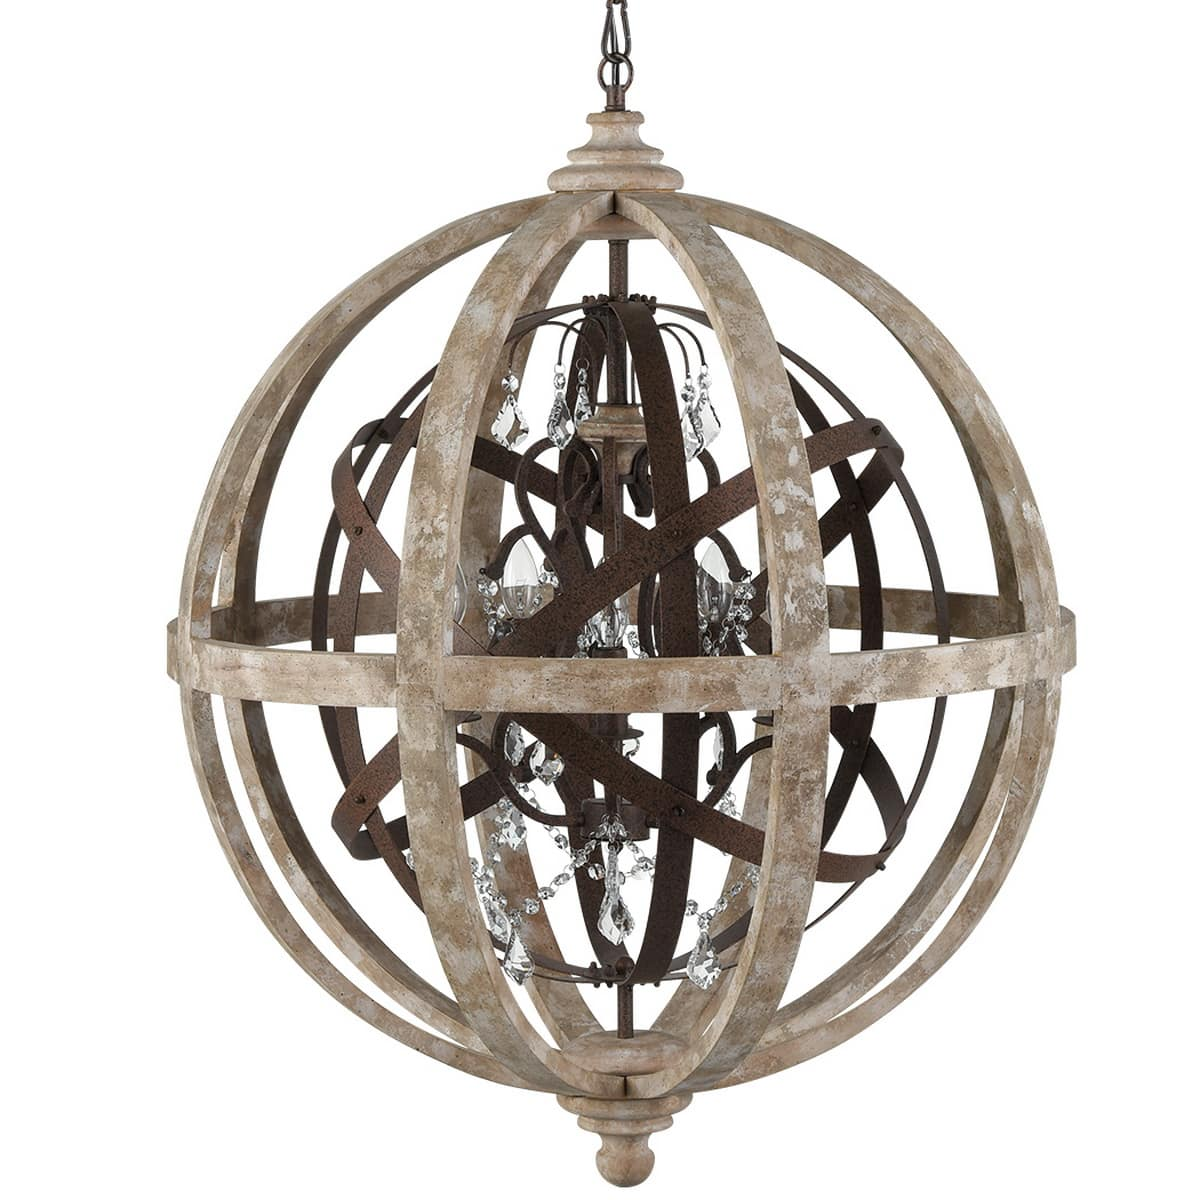 Weathered Wooden Globe Chandelier 5 Light Rustic Metal Crystal Ceiling Lights